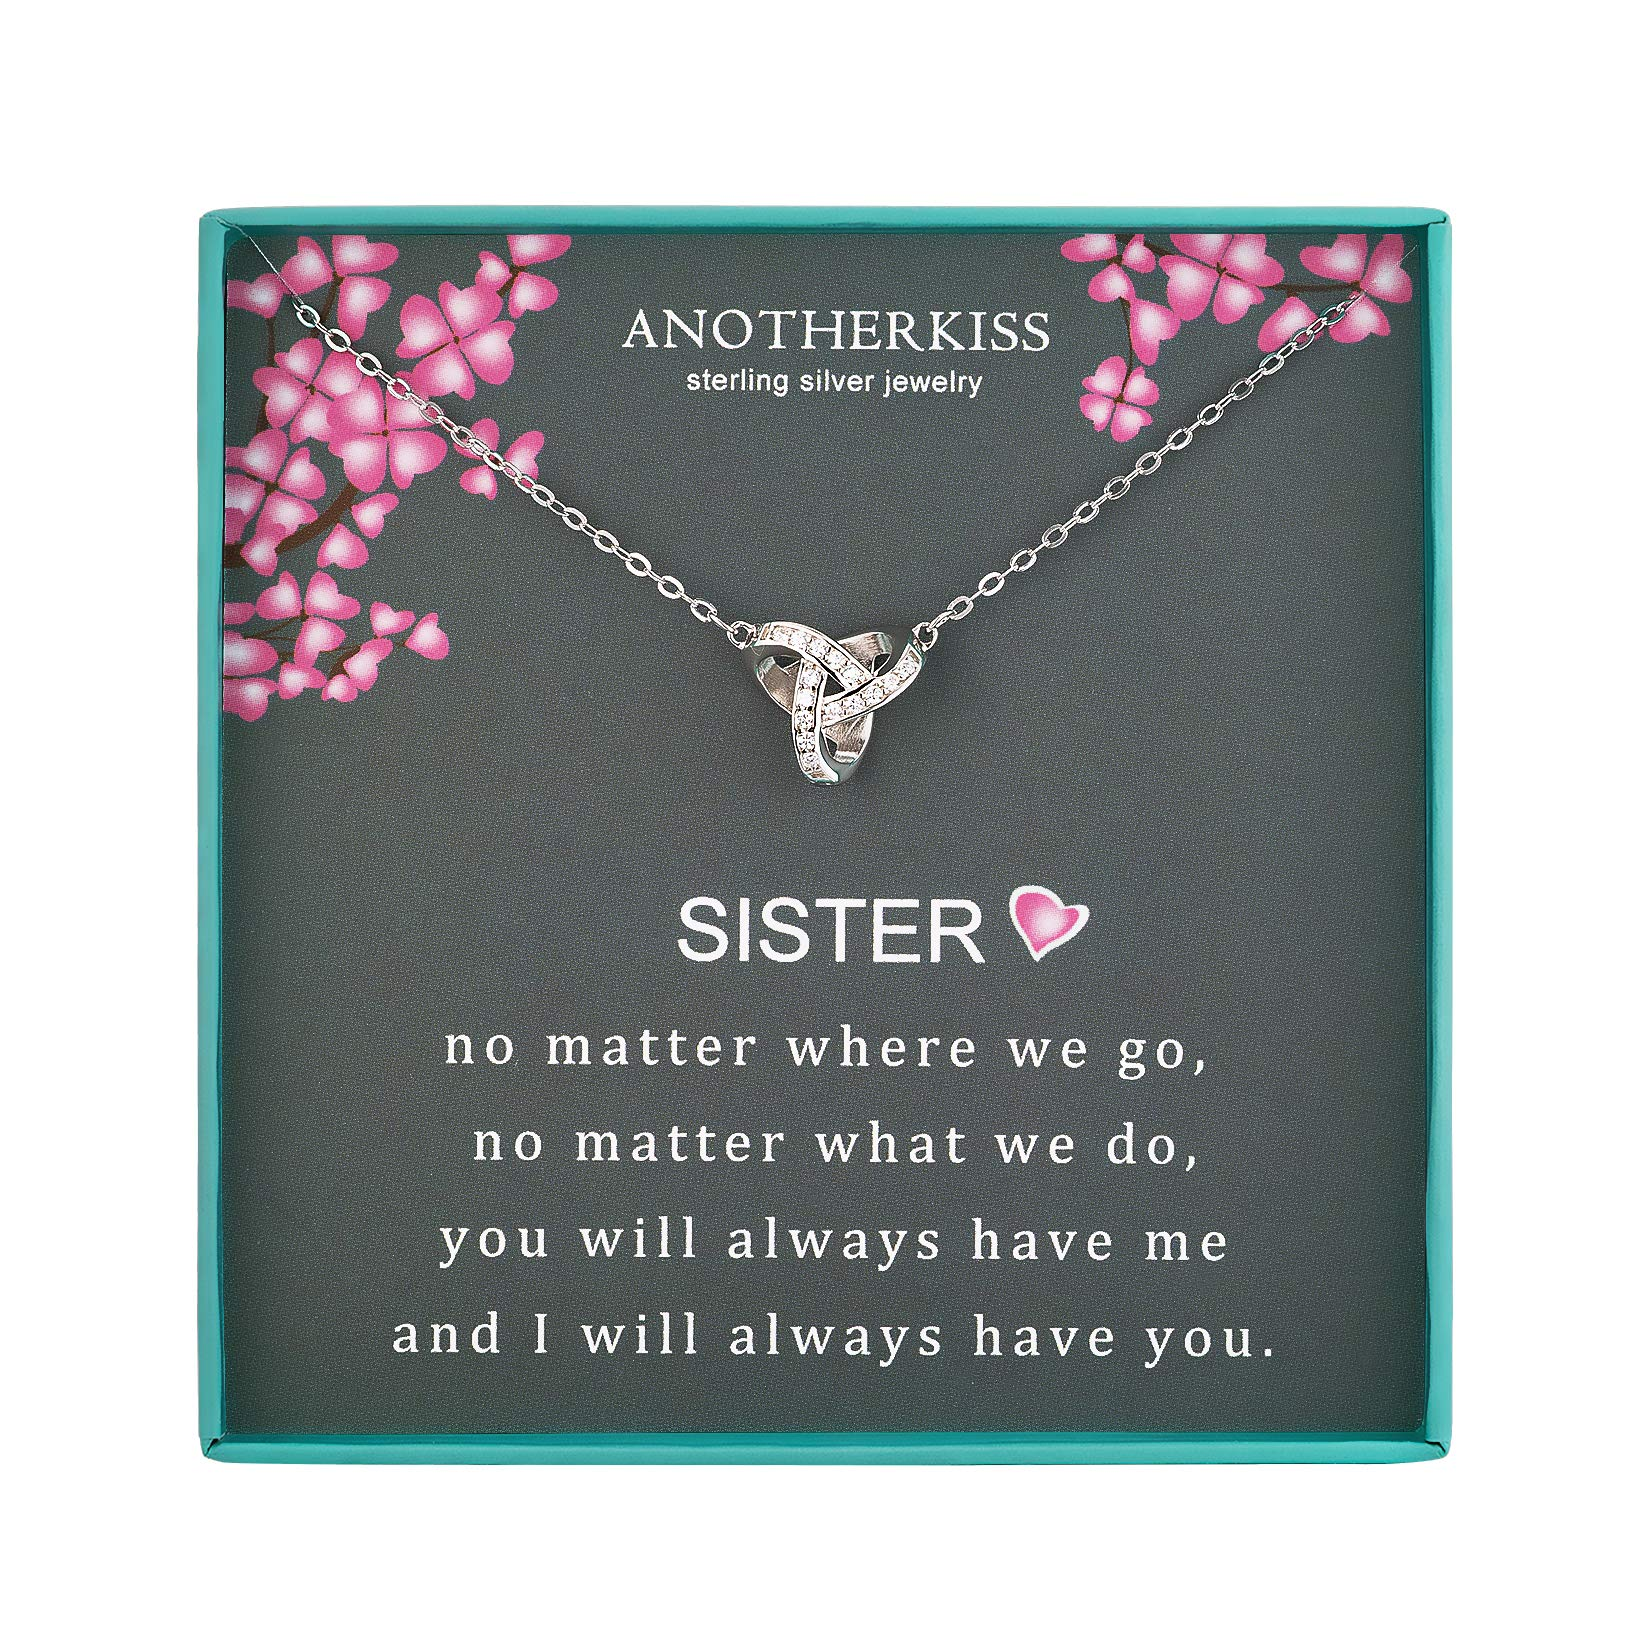 AnotherKiss Sister Gifts from Sister, Sterling Silver Triangle Geometric CZ Necklace for Sisters, Best Friend Birthday Jewelry, Friendship Gift Ideas